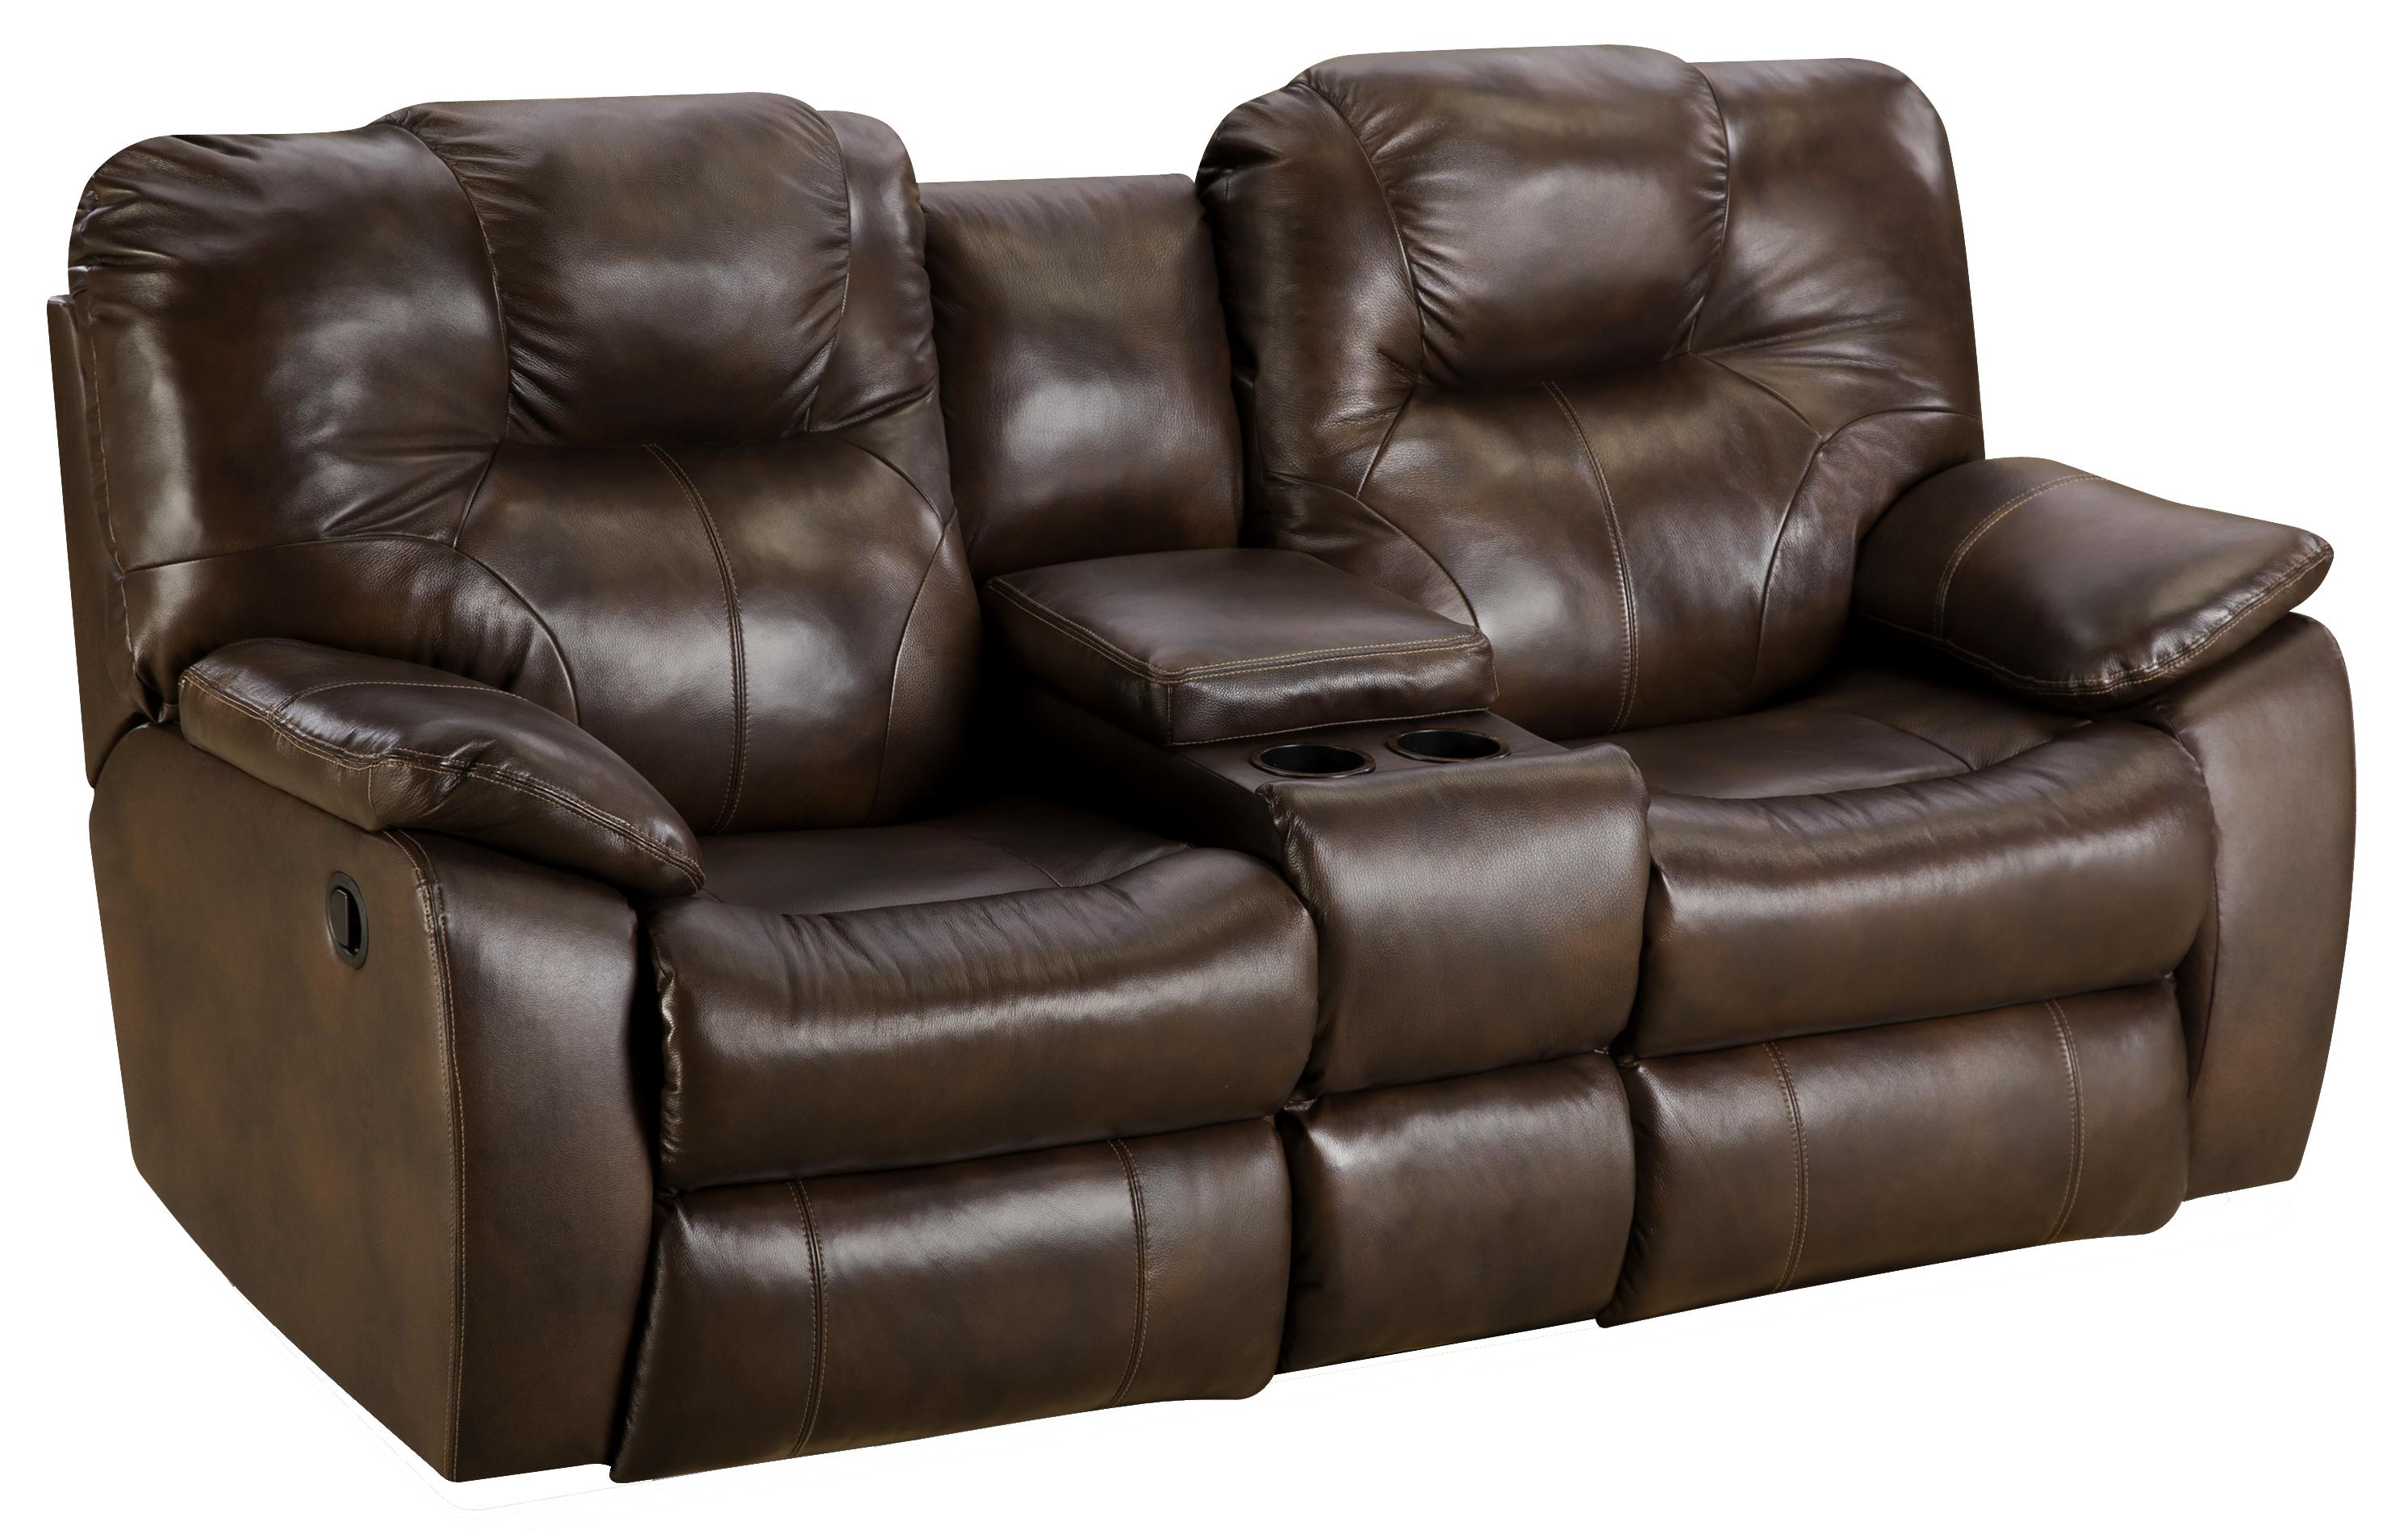 Power reclining sofa with console by southern motion wolf and gardiner wolf furniture Power loveseat recliner